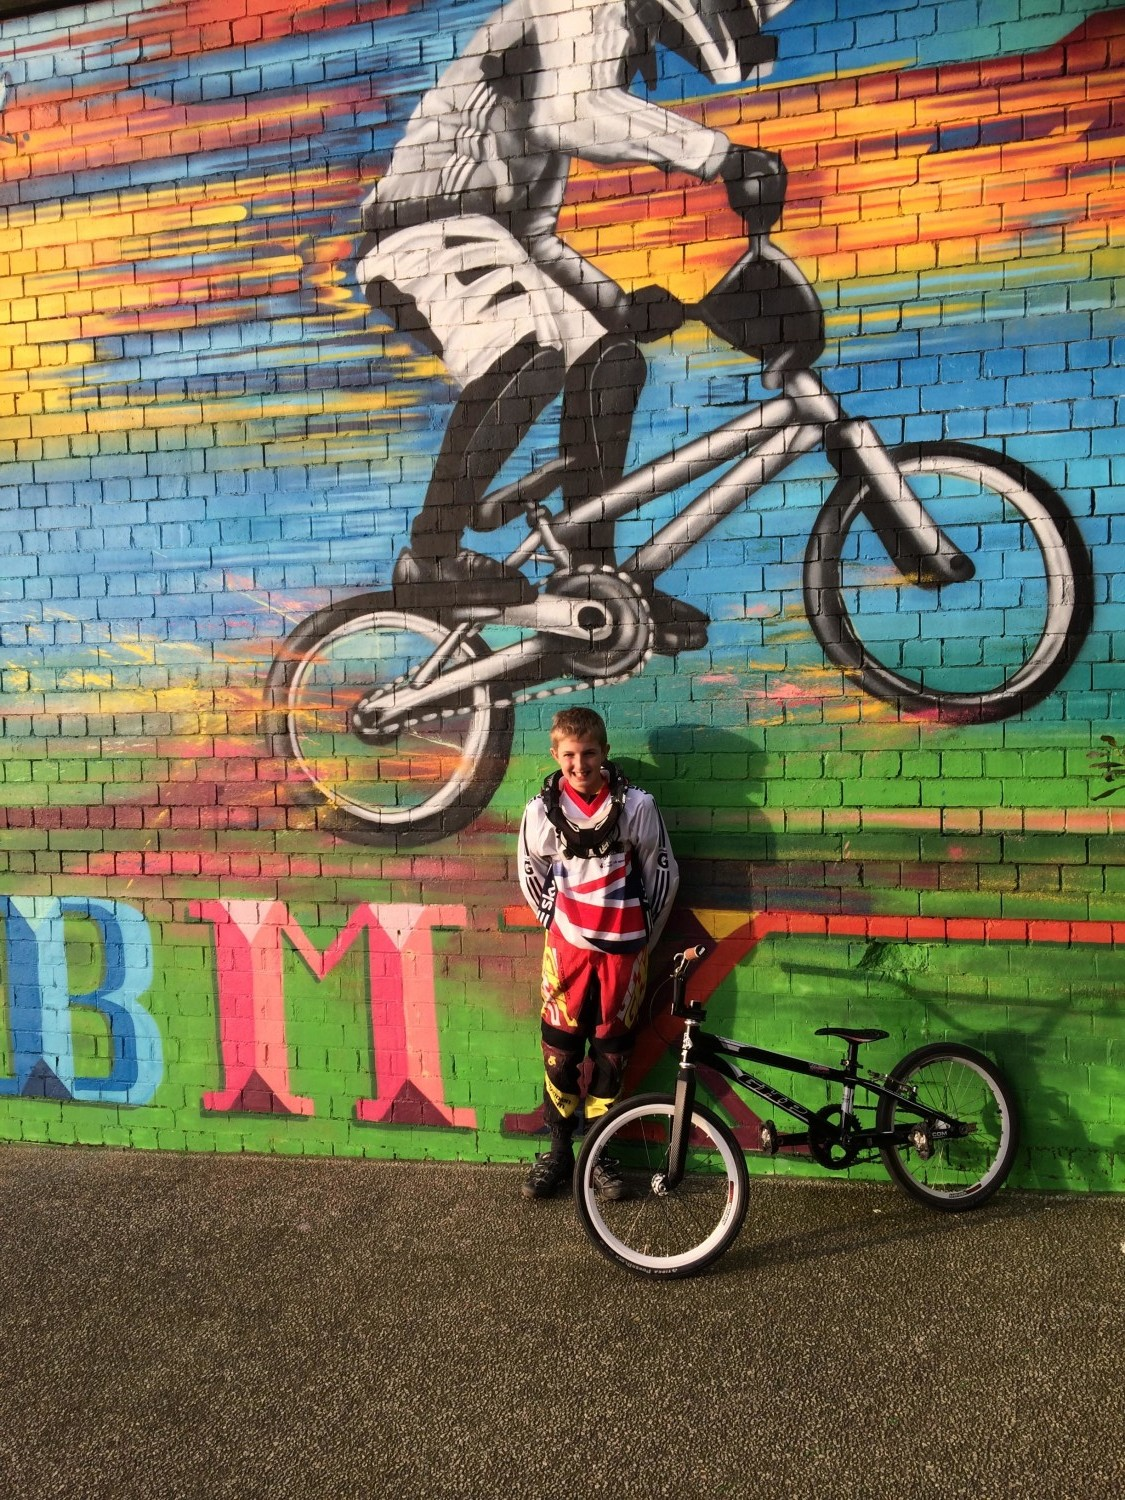 Lewis stood by BMX graffiti